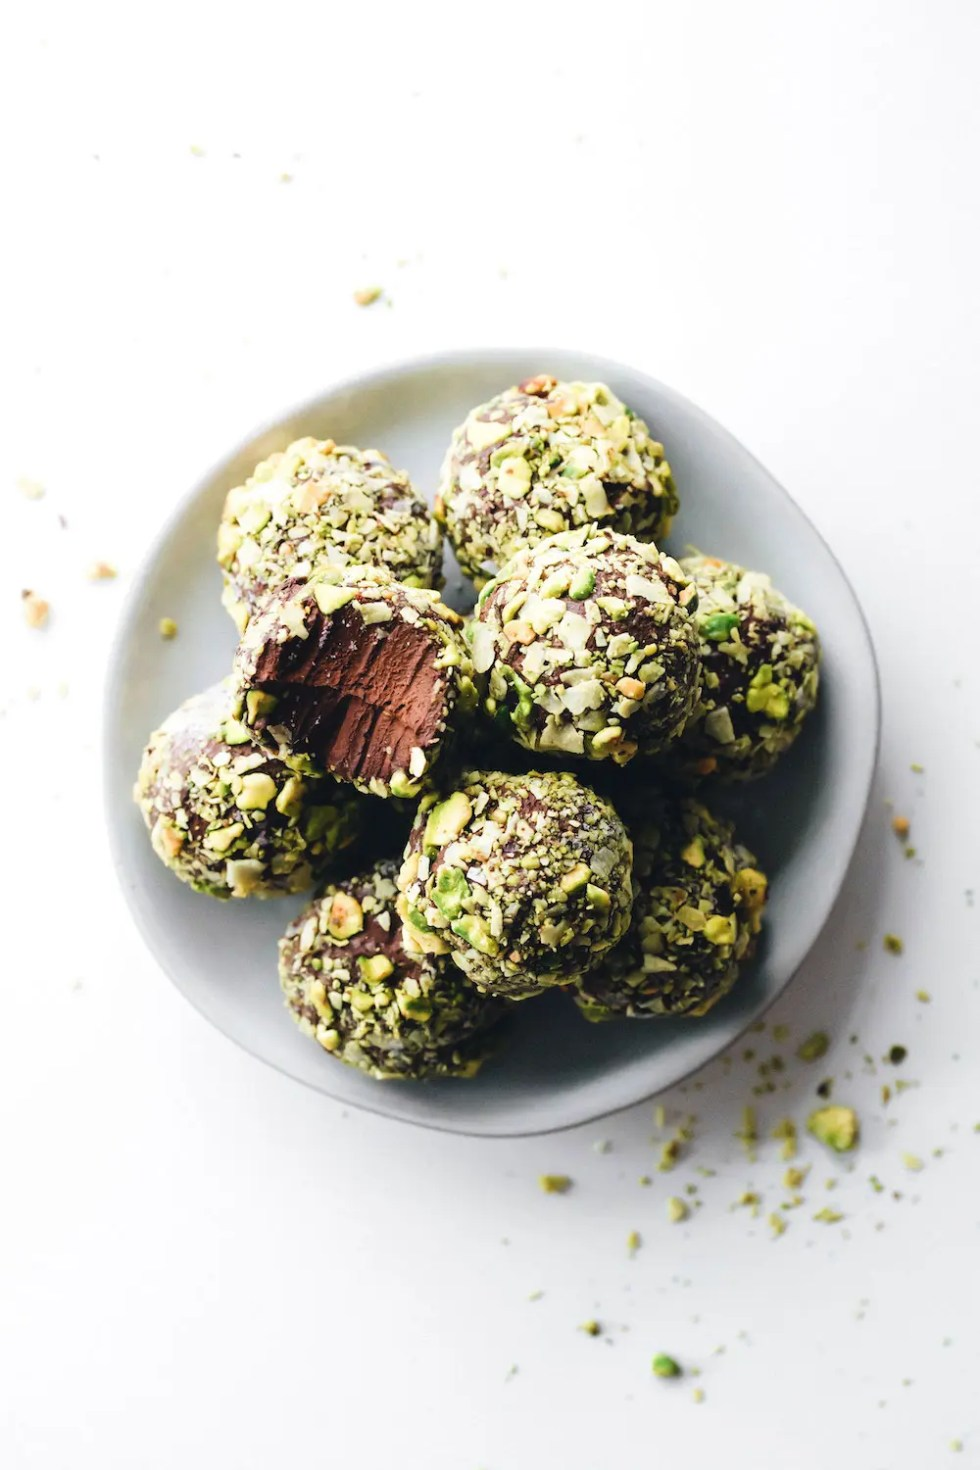 Chocolate Avocado Pudding Truffles